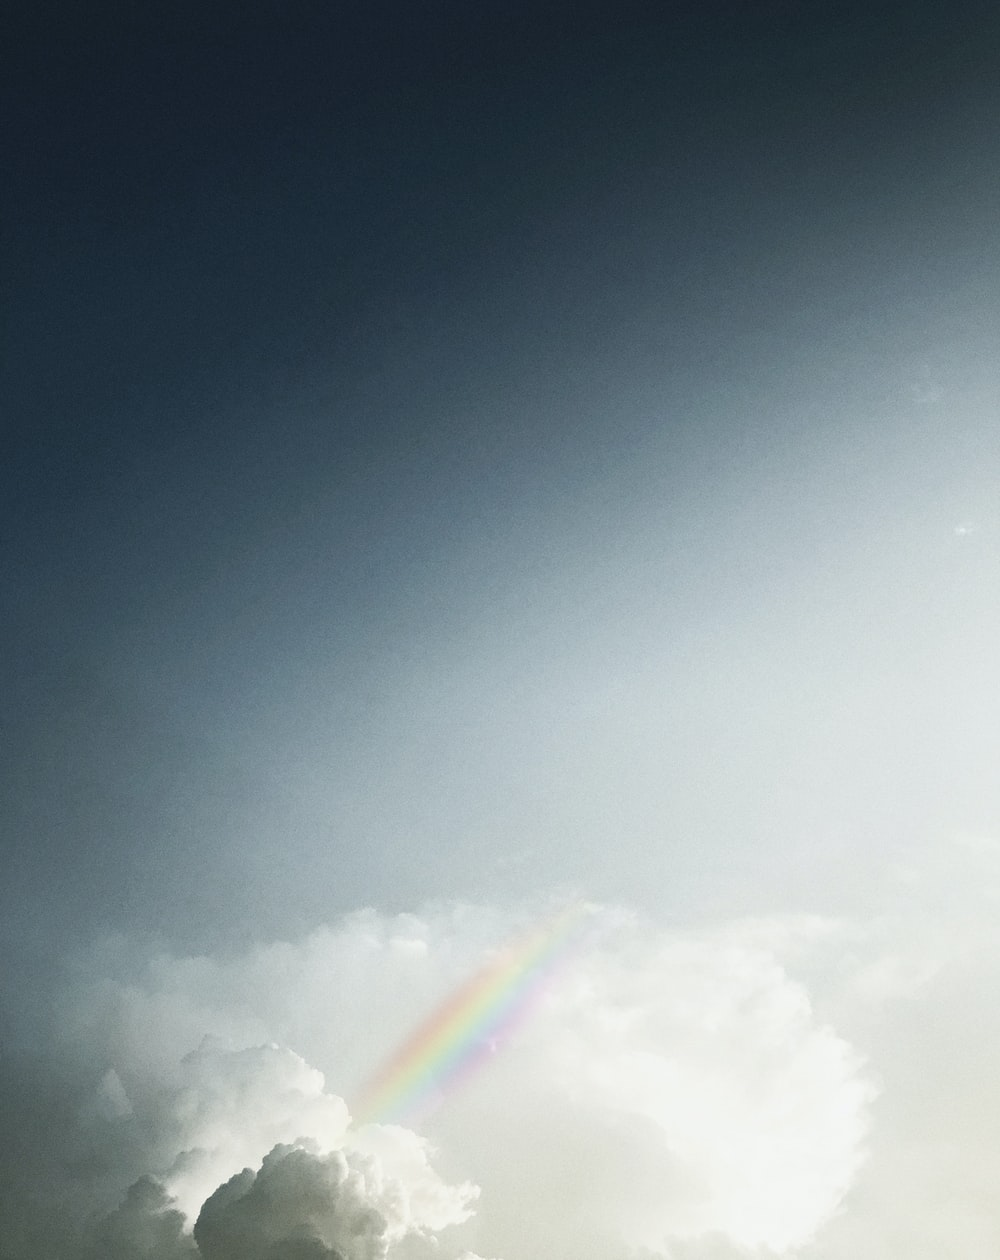 rainbow on clouds